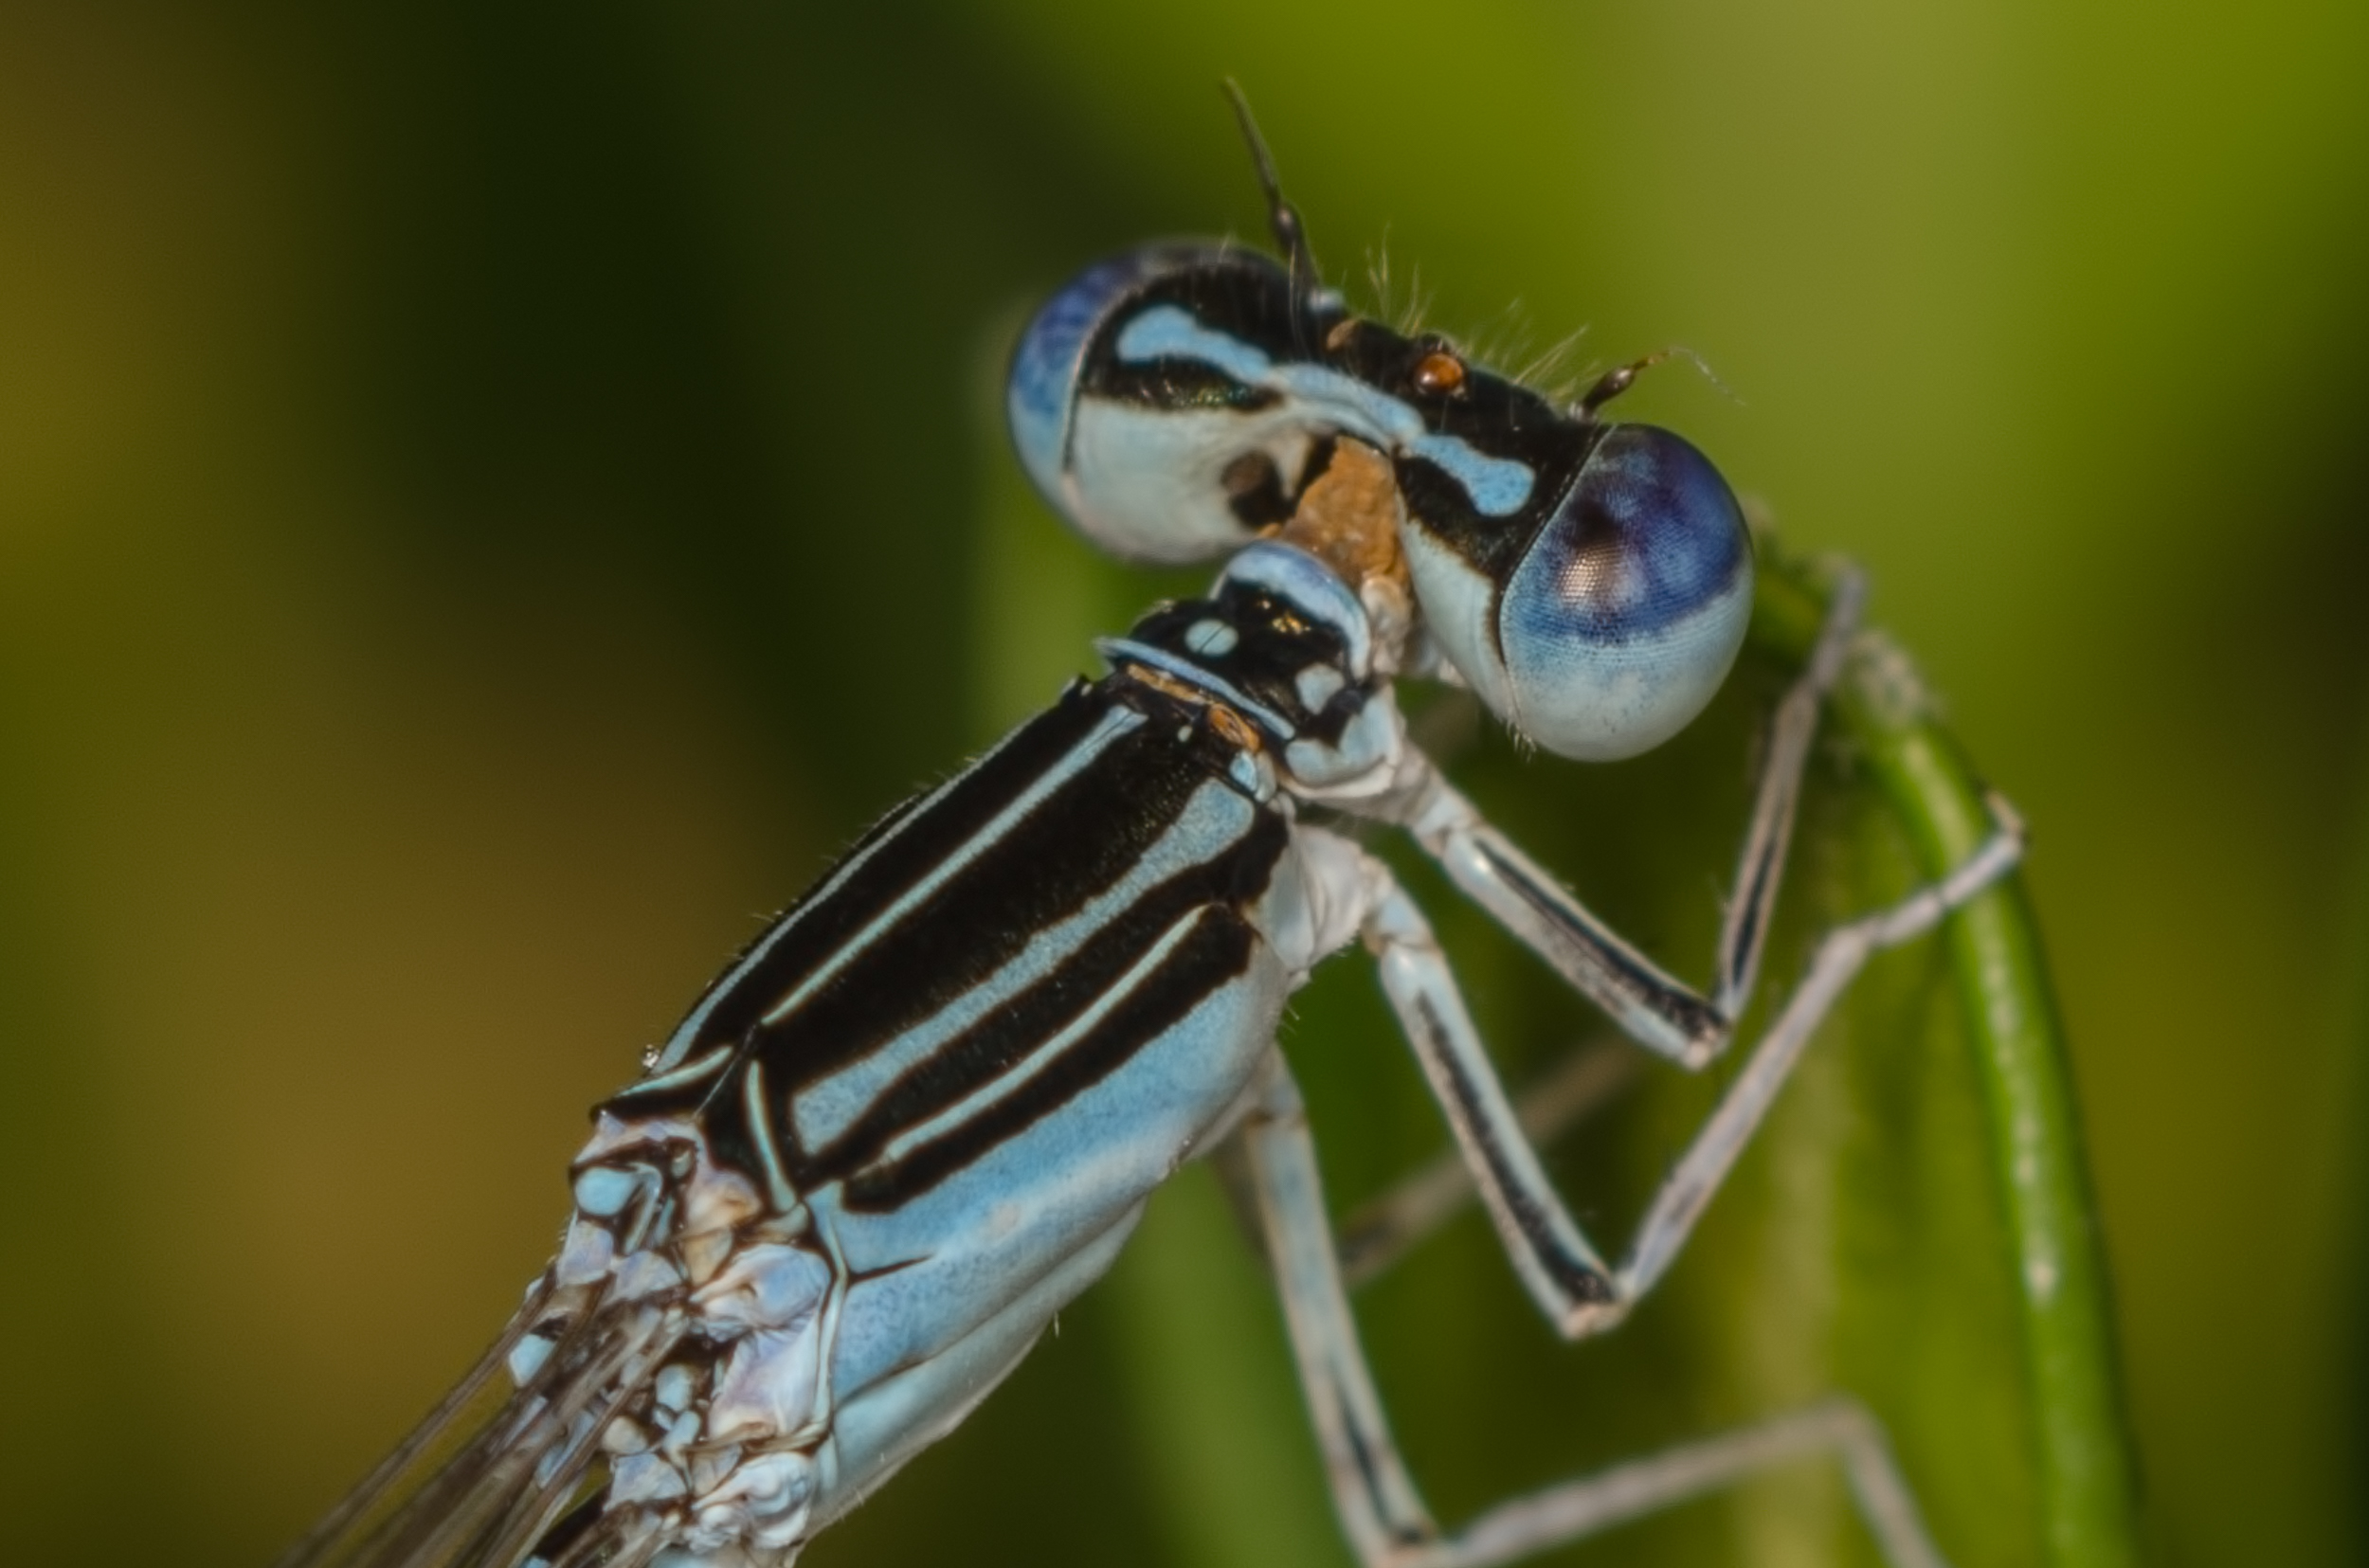 Bluetail Damselfly Nikon D7000 ISO 200 f/11 1/160 sec. and Nikkor 105mm f/4 Micro AI manual focus lens + 27mm + 20mm + 14mm + 12mm extension tubes, off-body flash with DIY snoot/diffuser